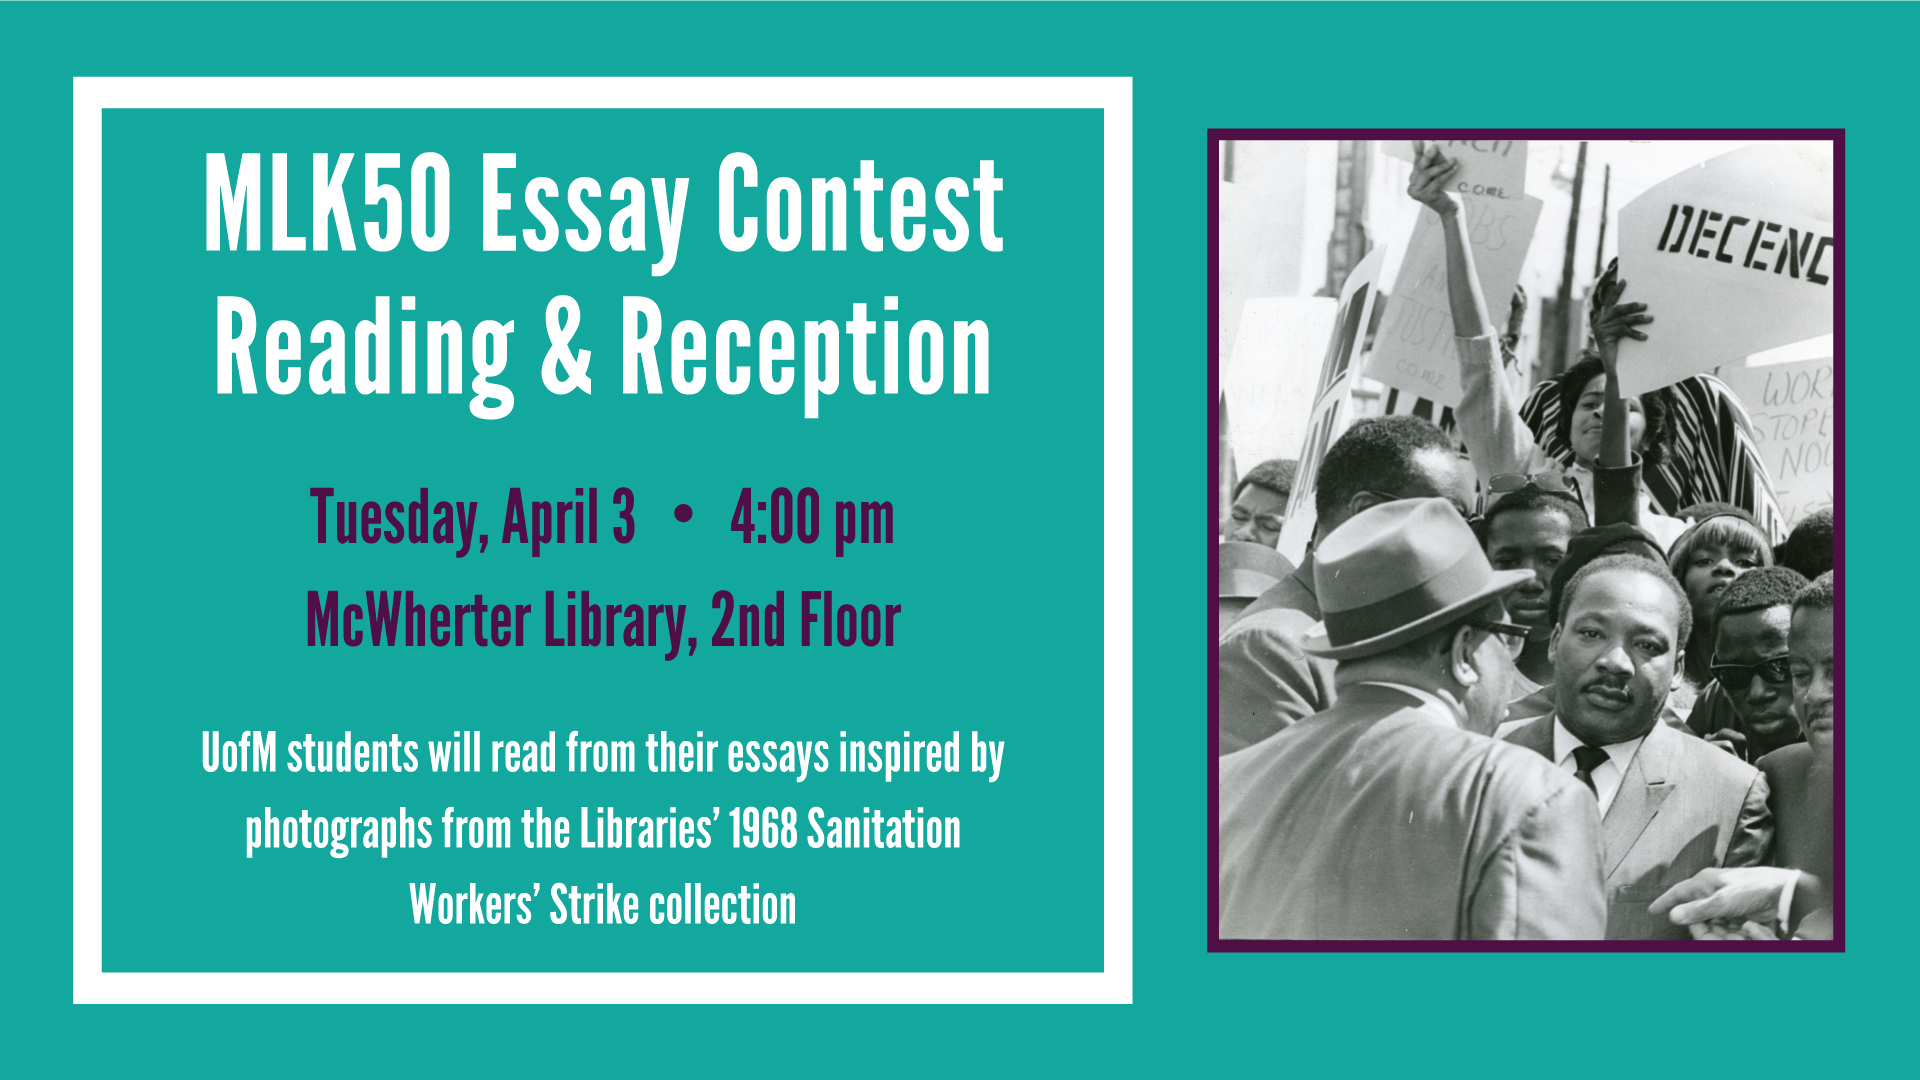 Student Essay Contest Reception and Reading